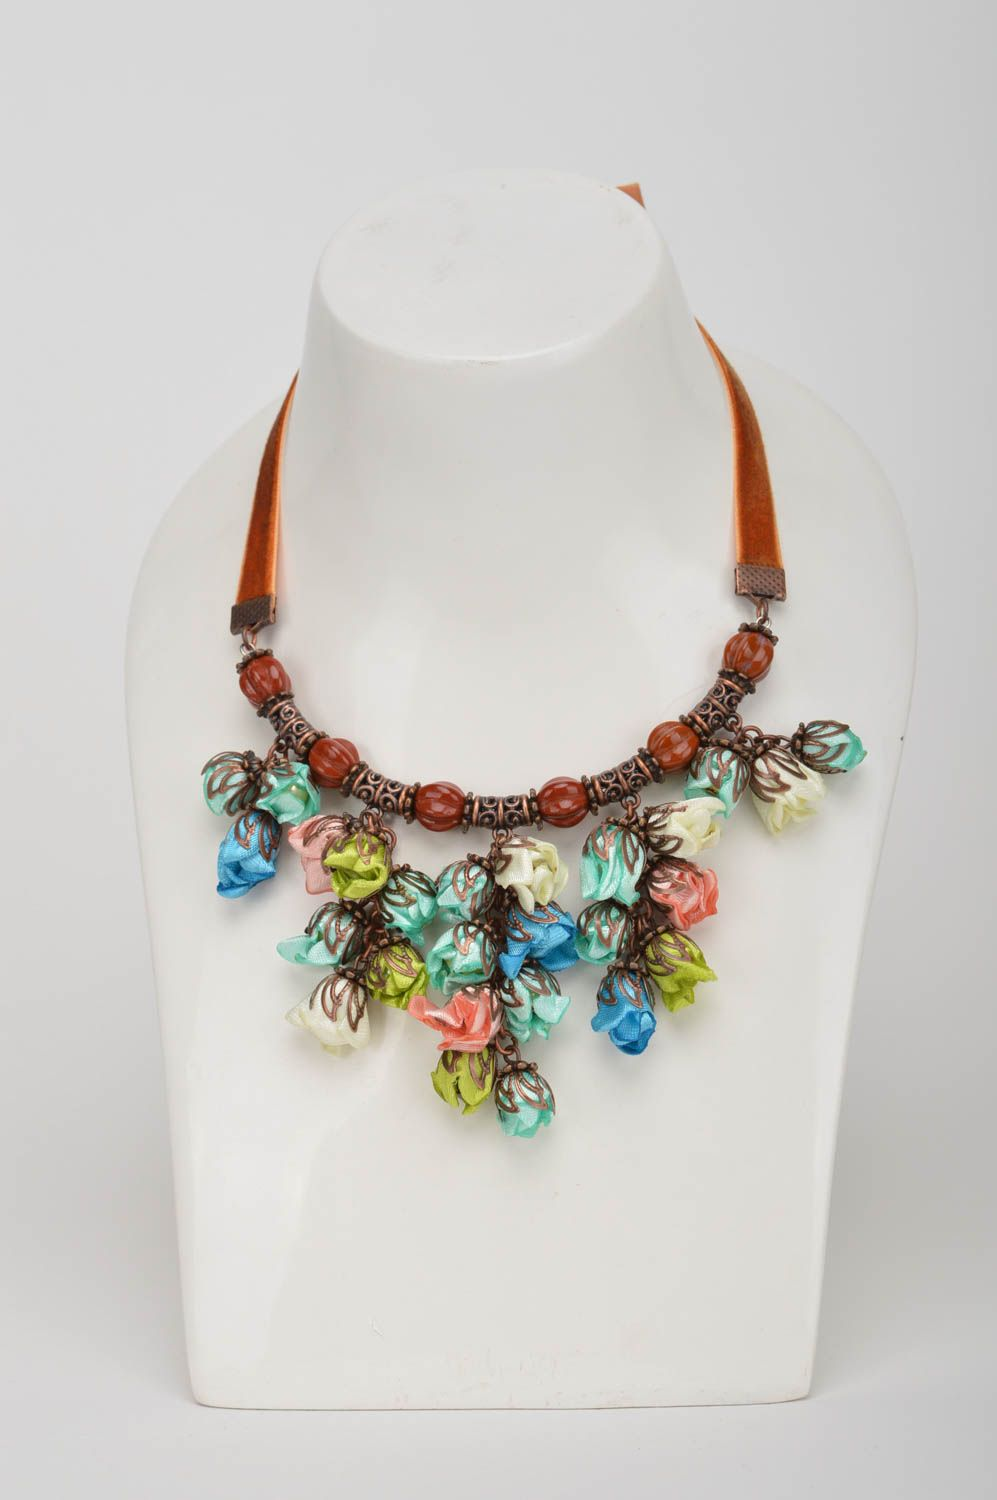 textile new category work art necklace kennedy wai jewellery yuk matching